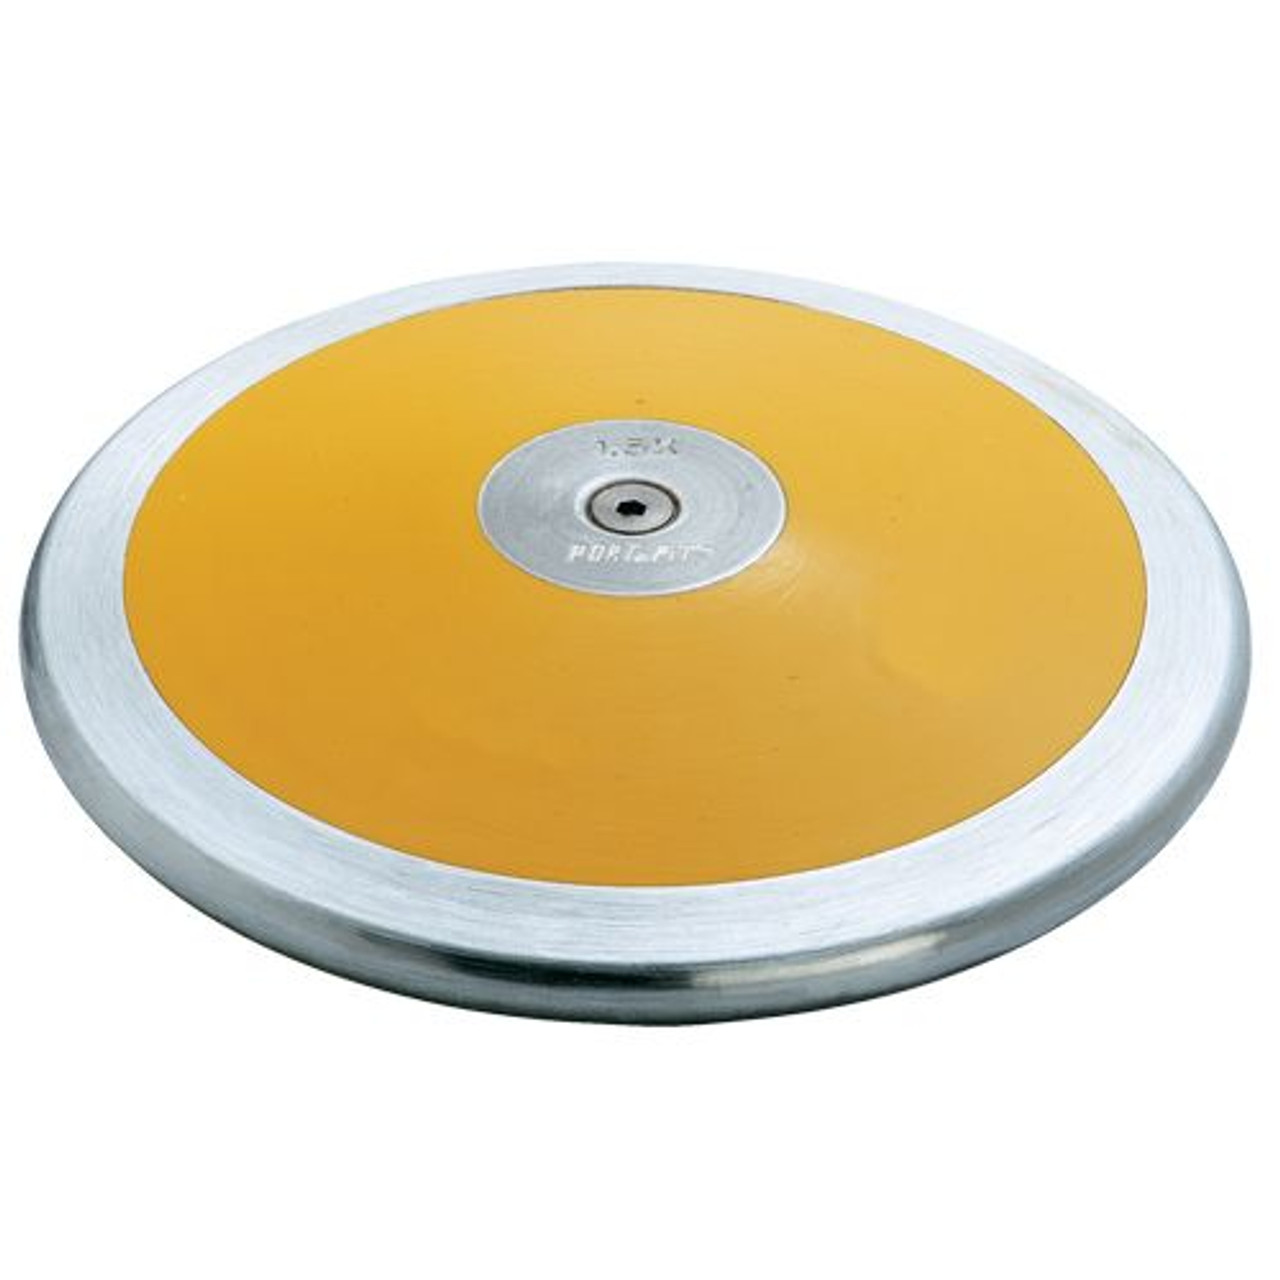 Gold Lo-Spin Discus 1K track and field